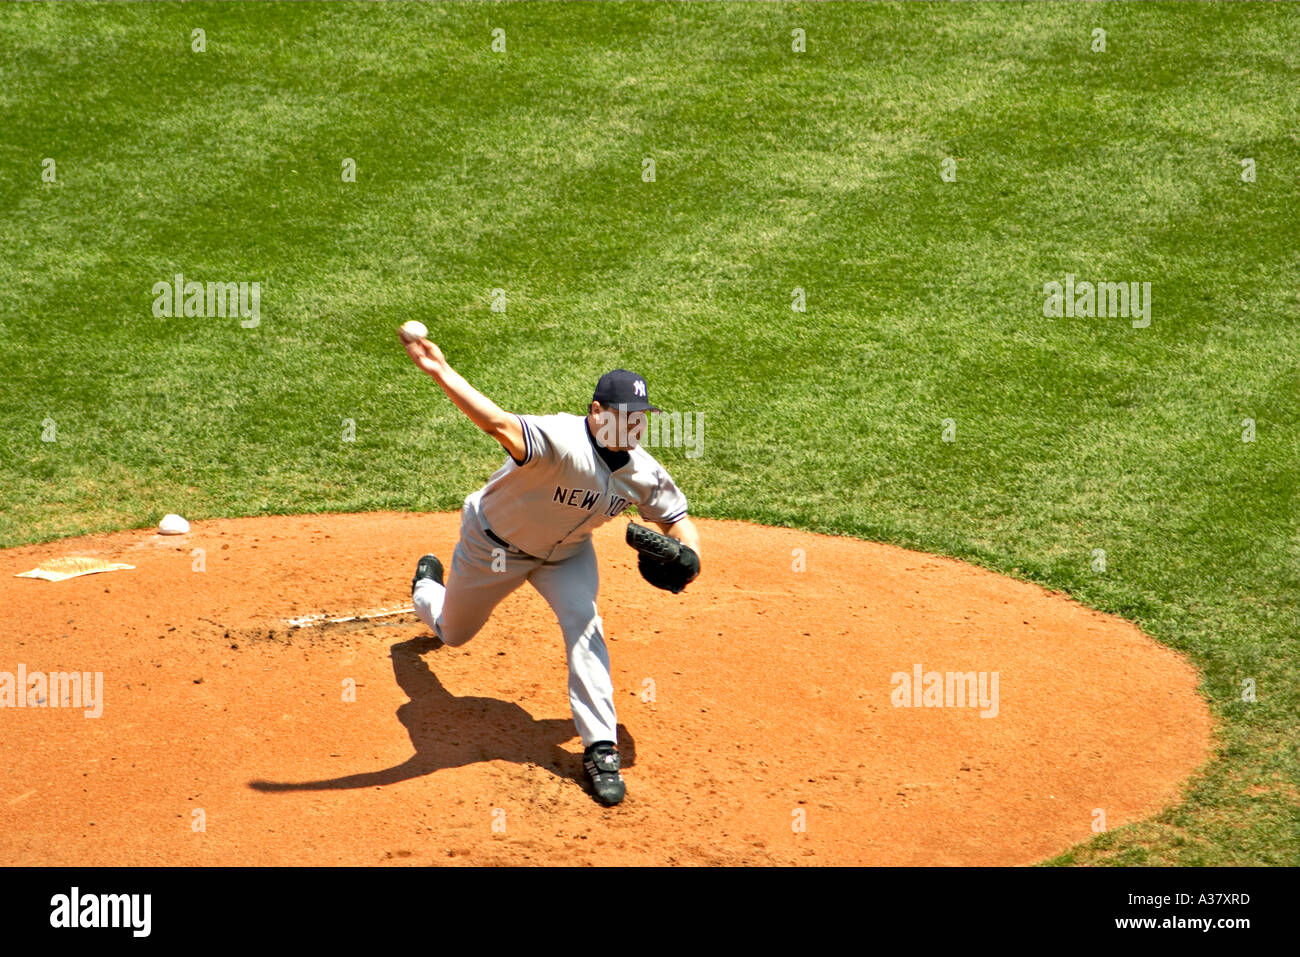 Roger Clemens Stock Photos Amp Roger Clemens Stock Images